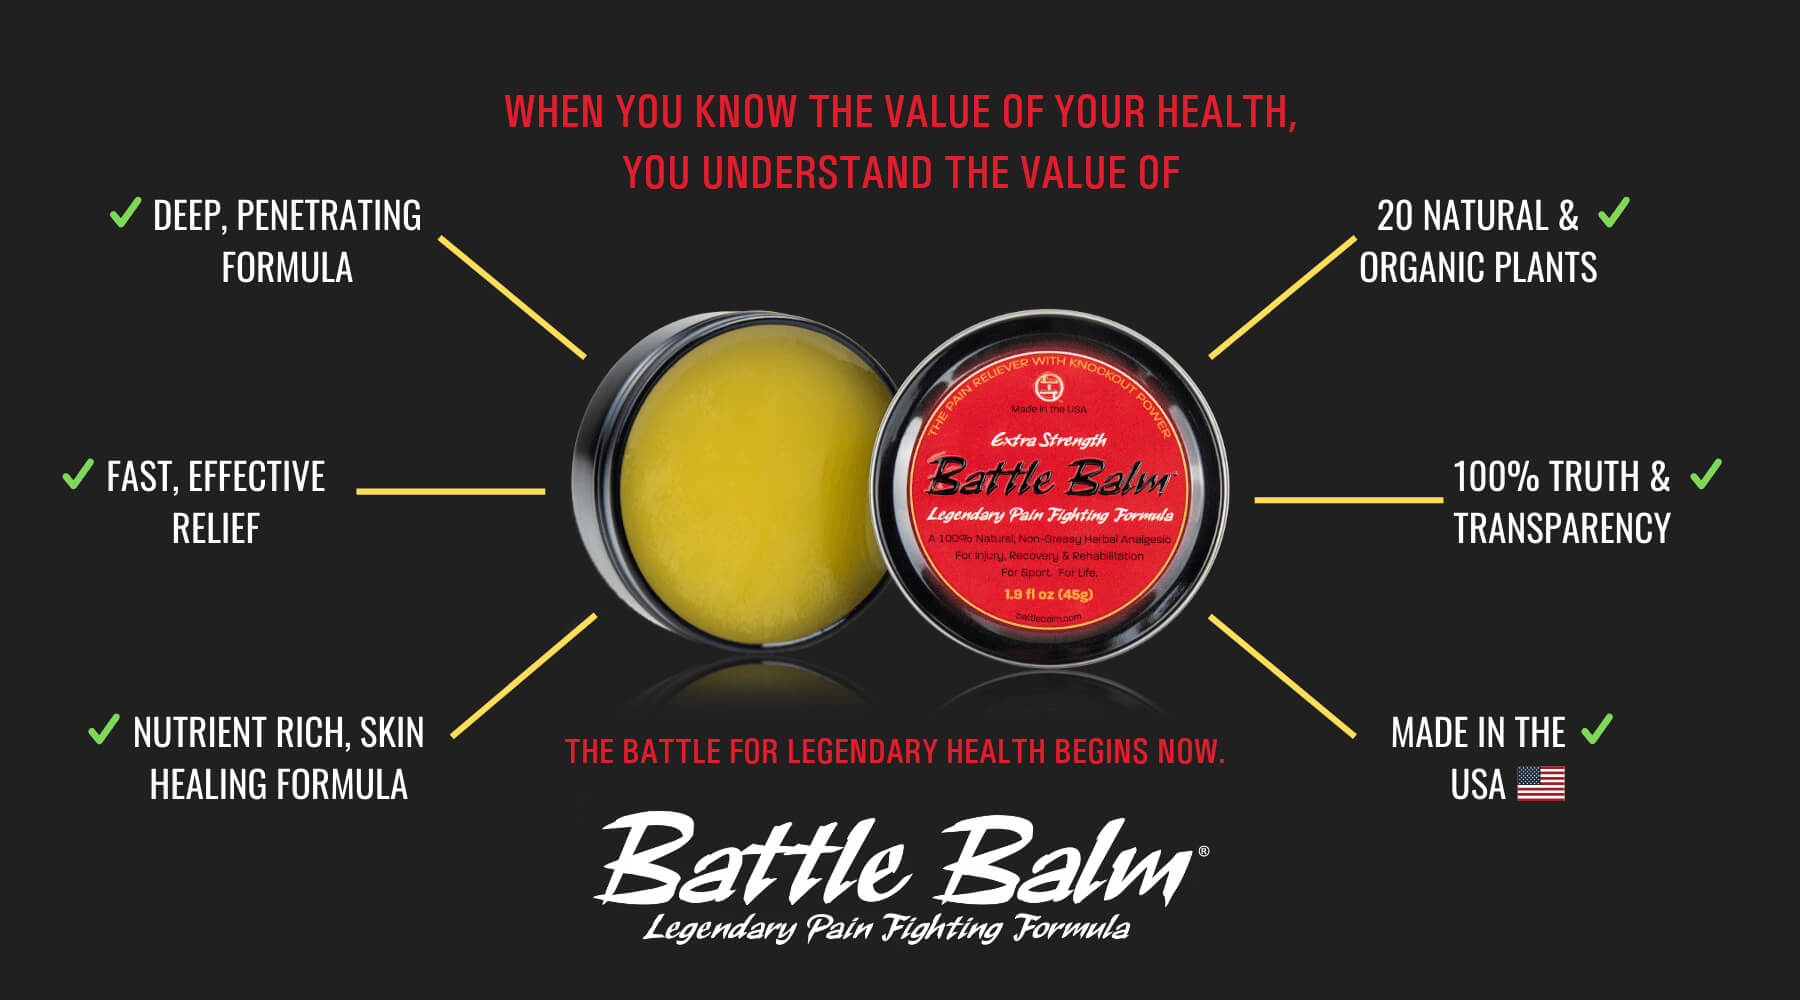 Battle Balm All Natural Topical Pain Relief Cream with deep, fast, effective relief. Made in the USA.